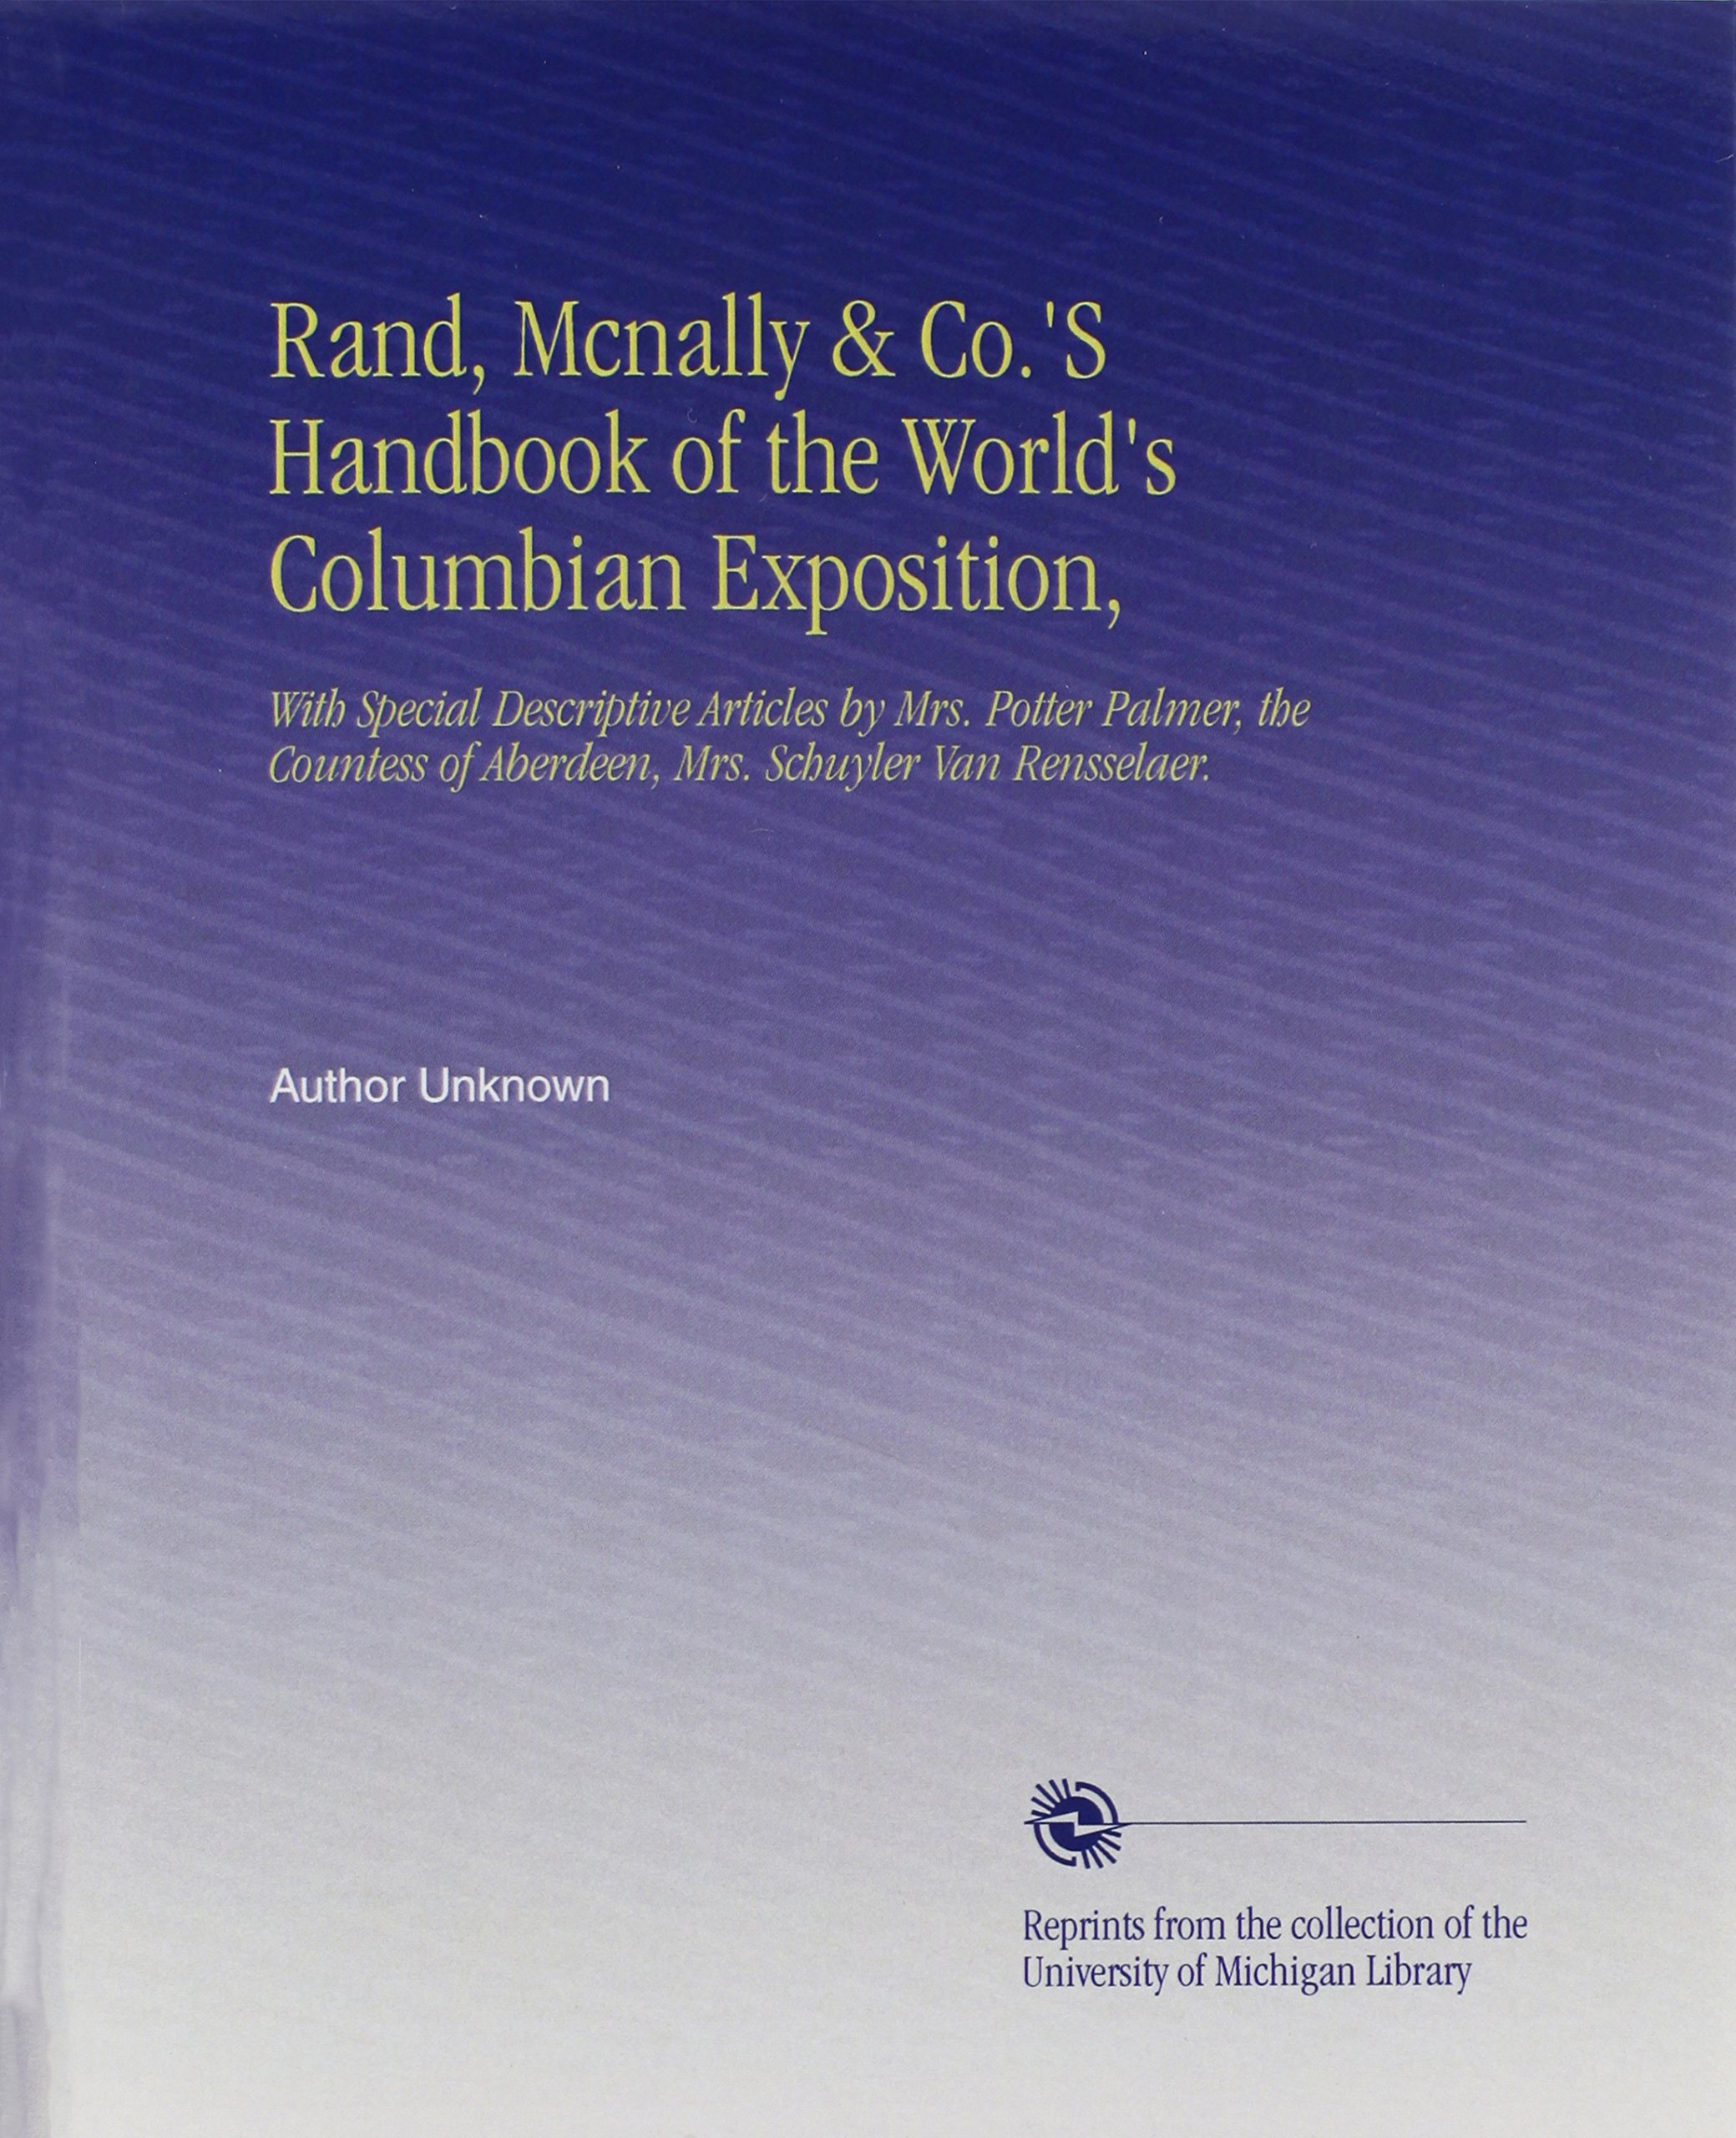 Rand, Mcnally & Co.'S Handbook of the World's Columbian Exposition,: With Special Descriptive Articles by Mrs. Potter Palmer, the Countess of Aberdeen, Mrs. Schuyler Van Rensselaer. ebook